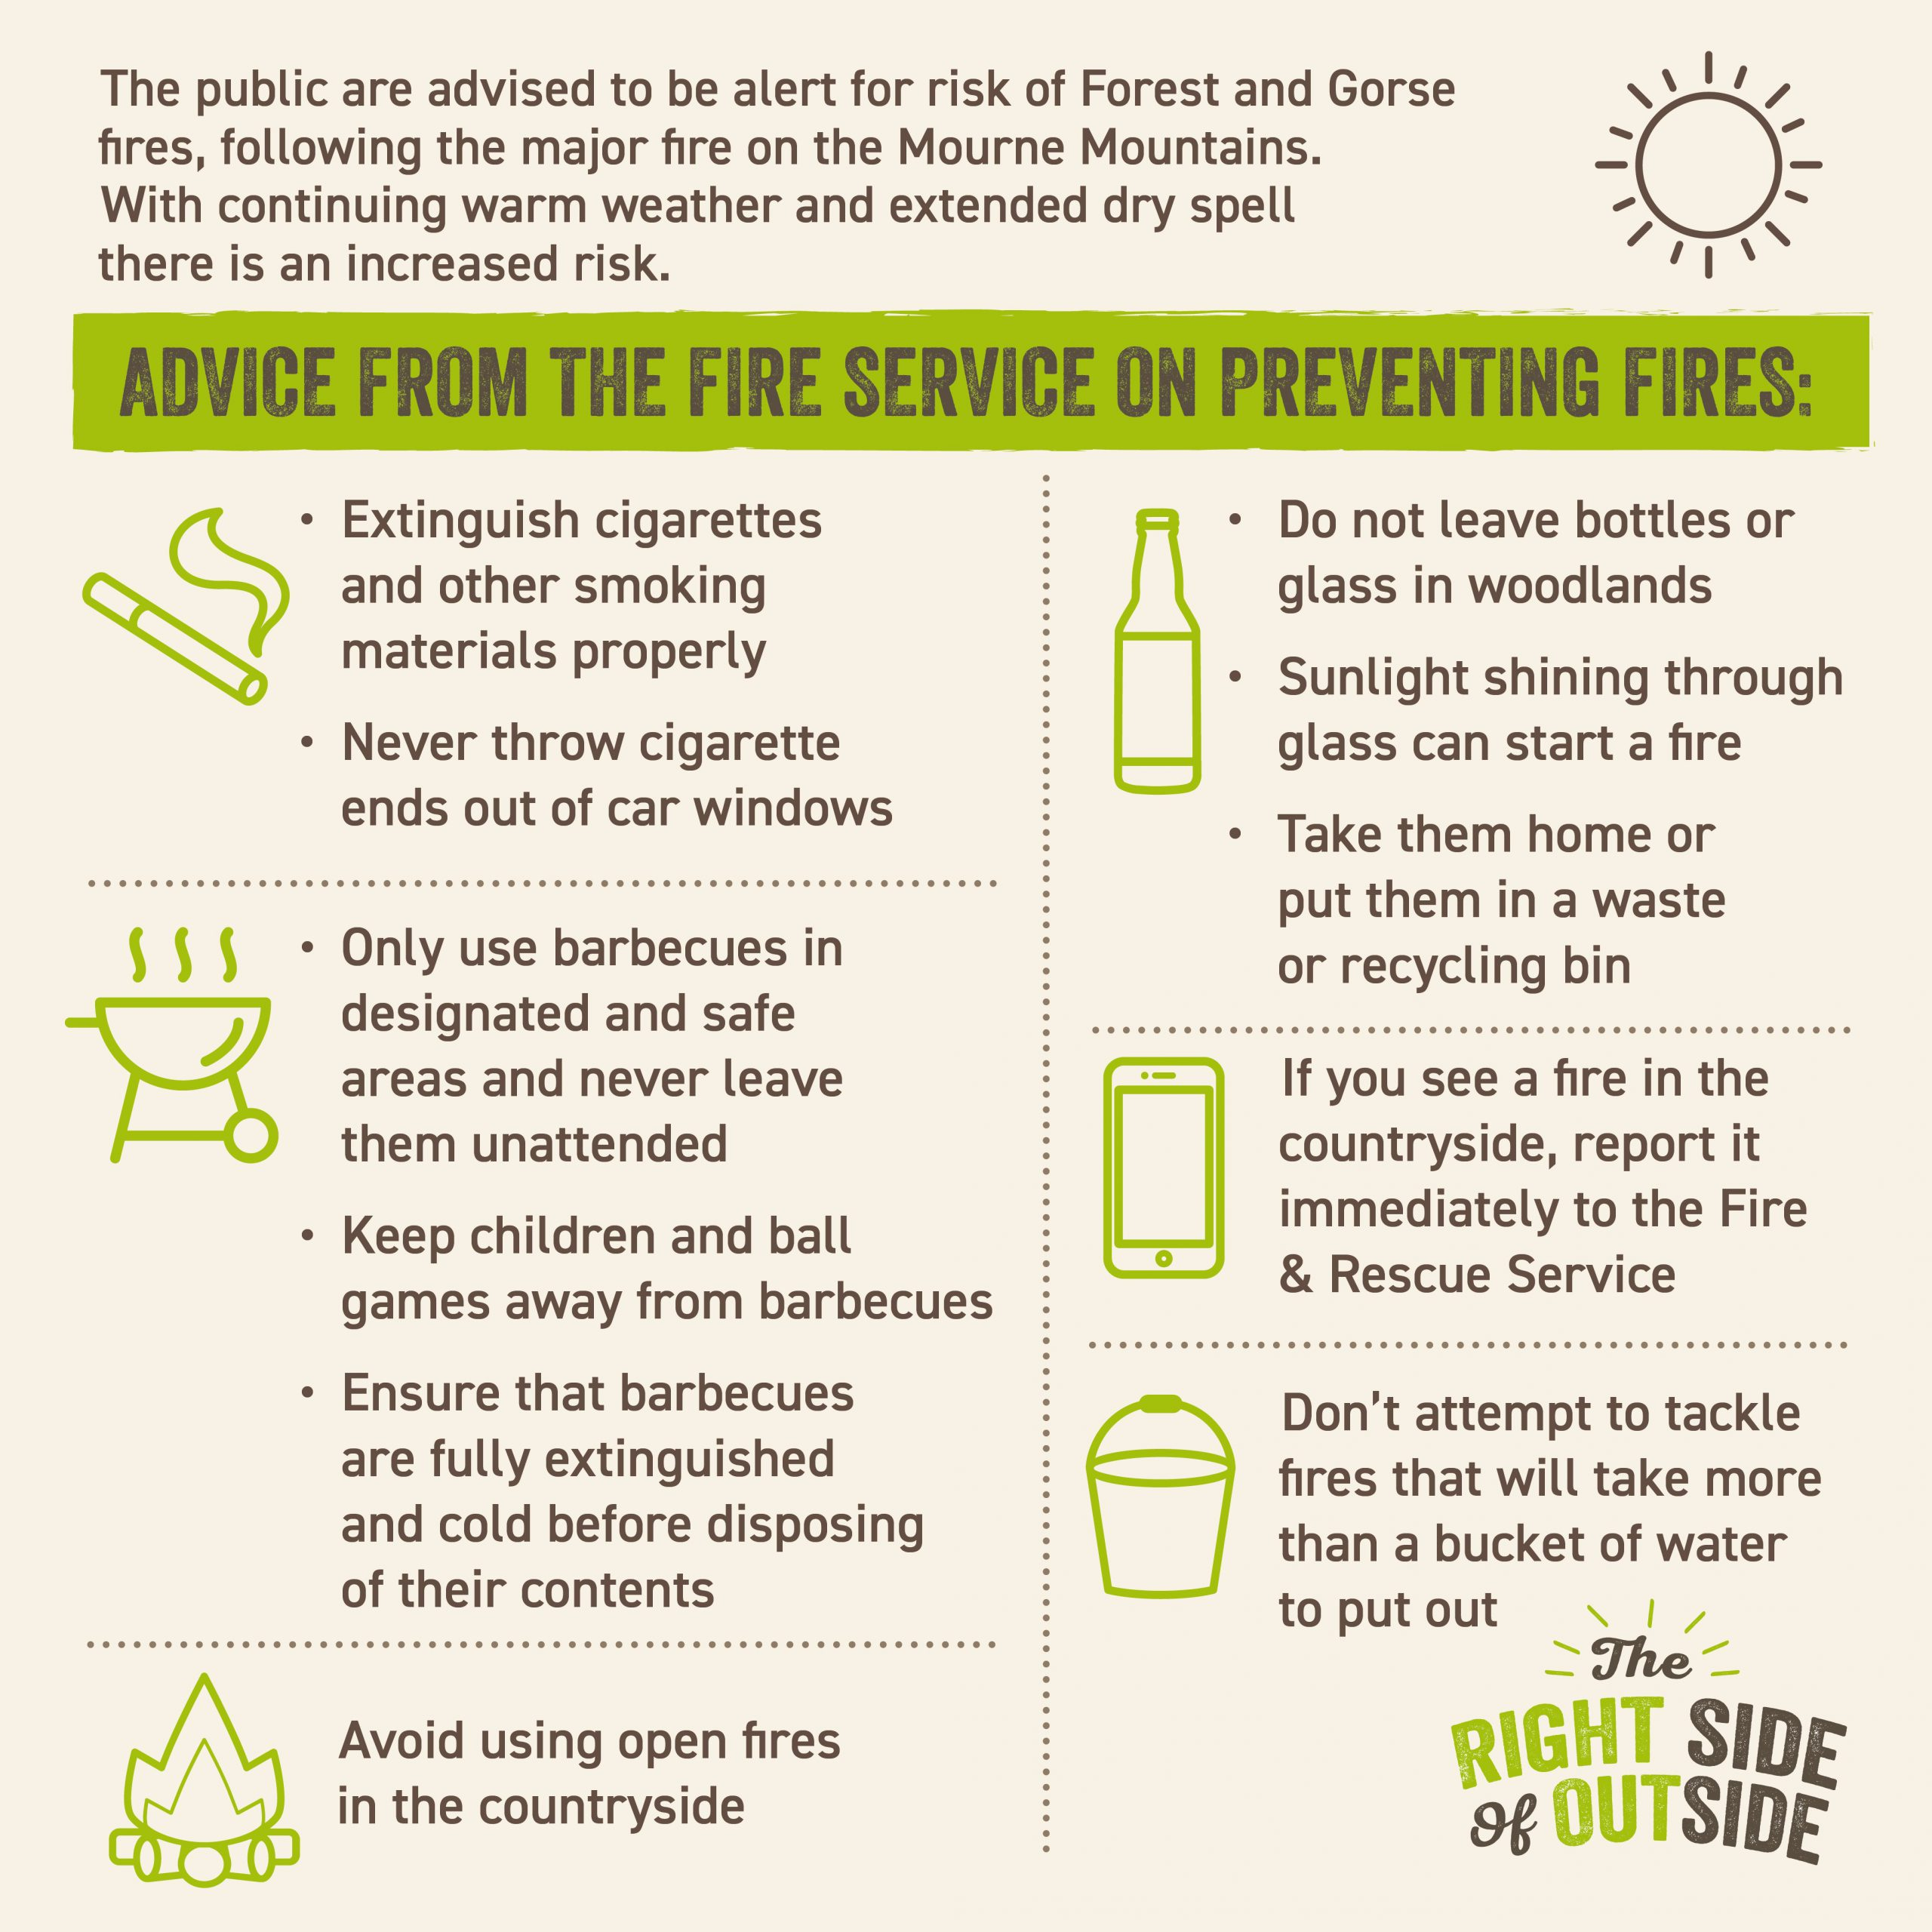 Advice for preventing fires from NIFS